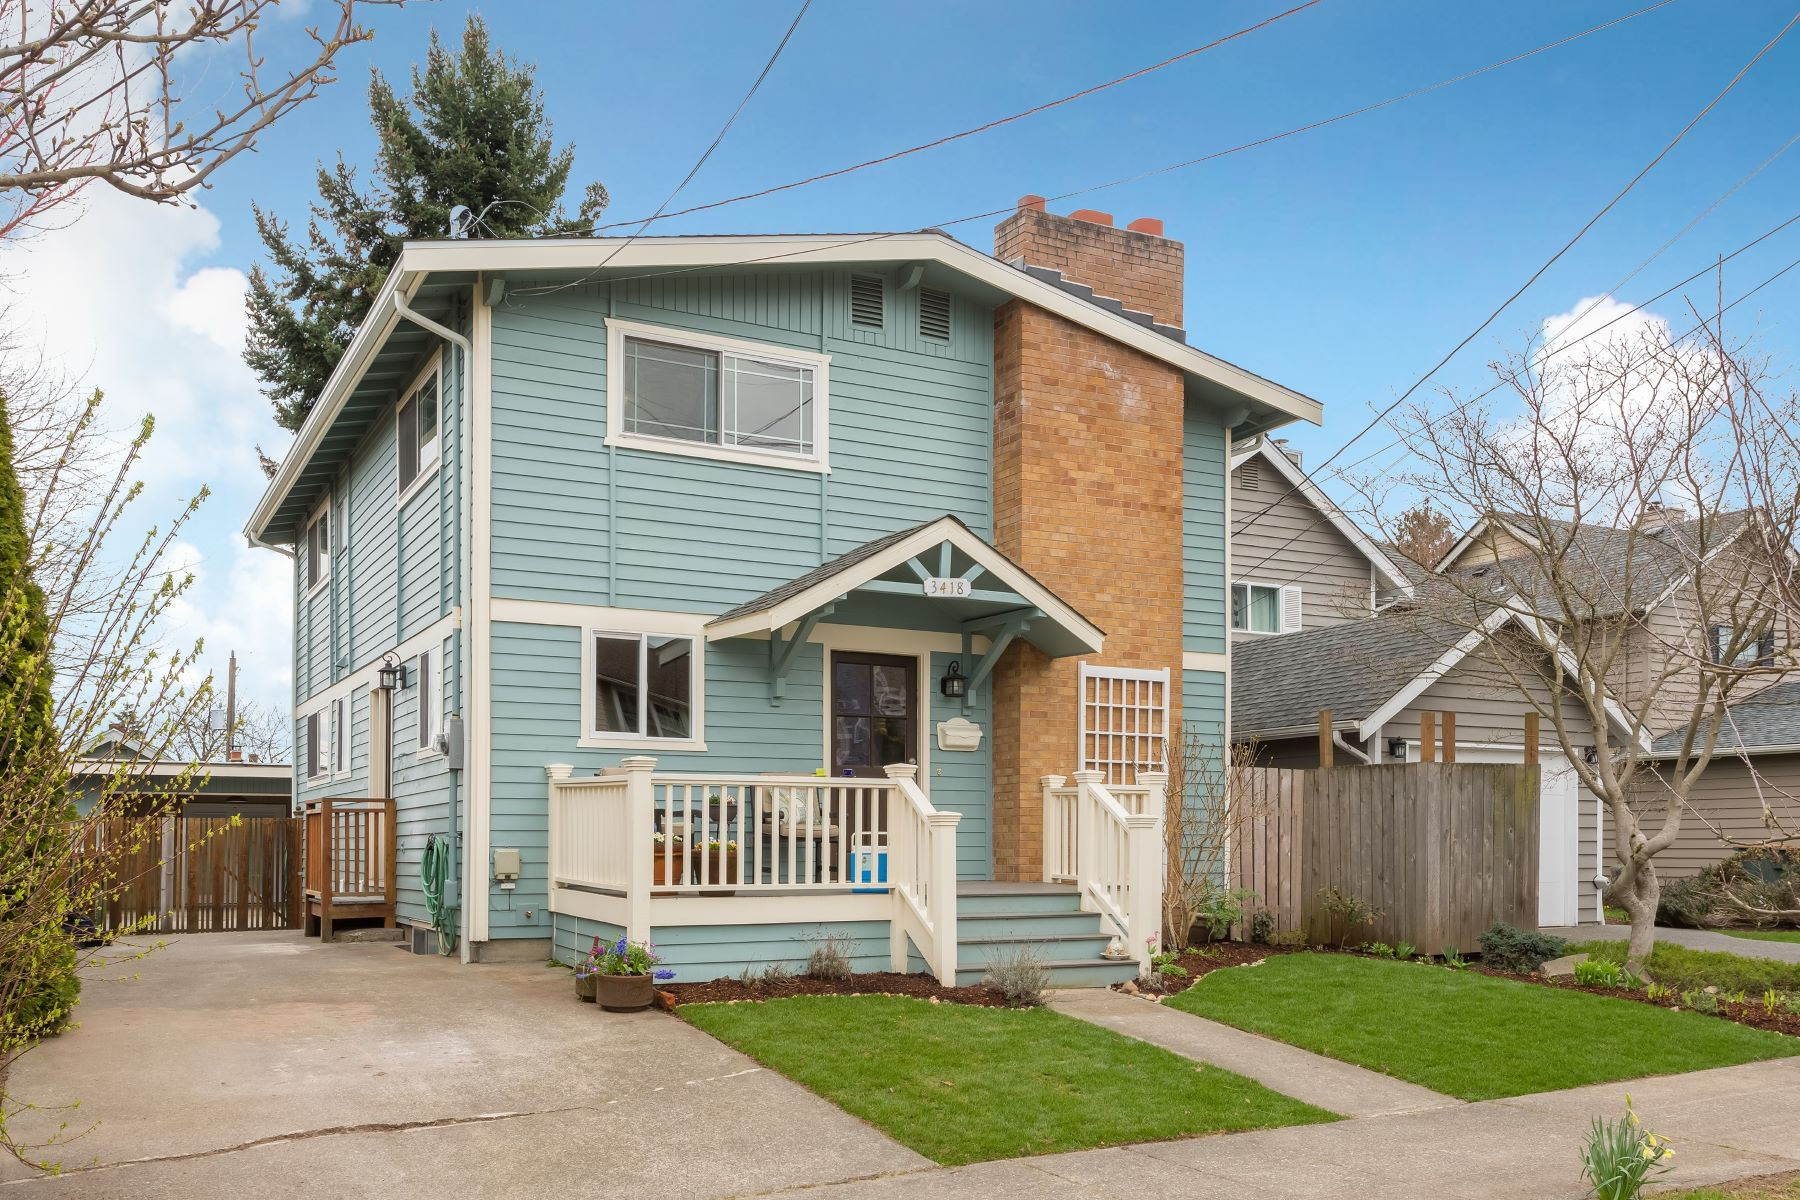 open-houses property at Beautifully updated home nestled in West Seattle's desirable North end!